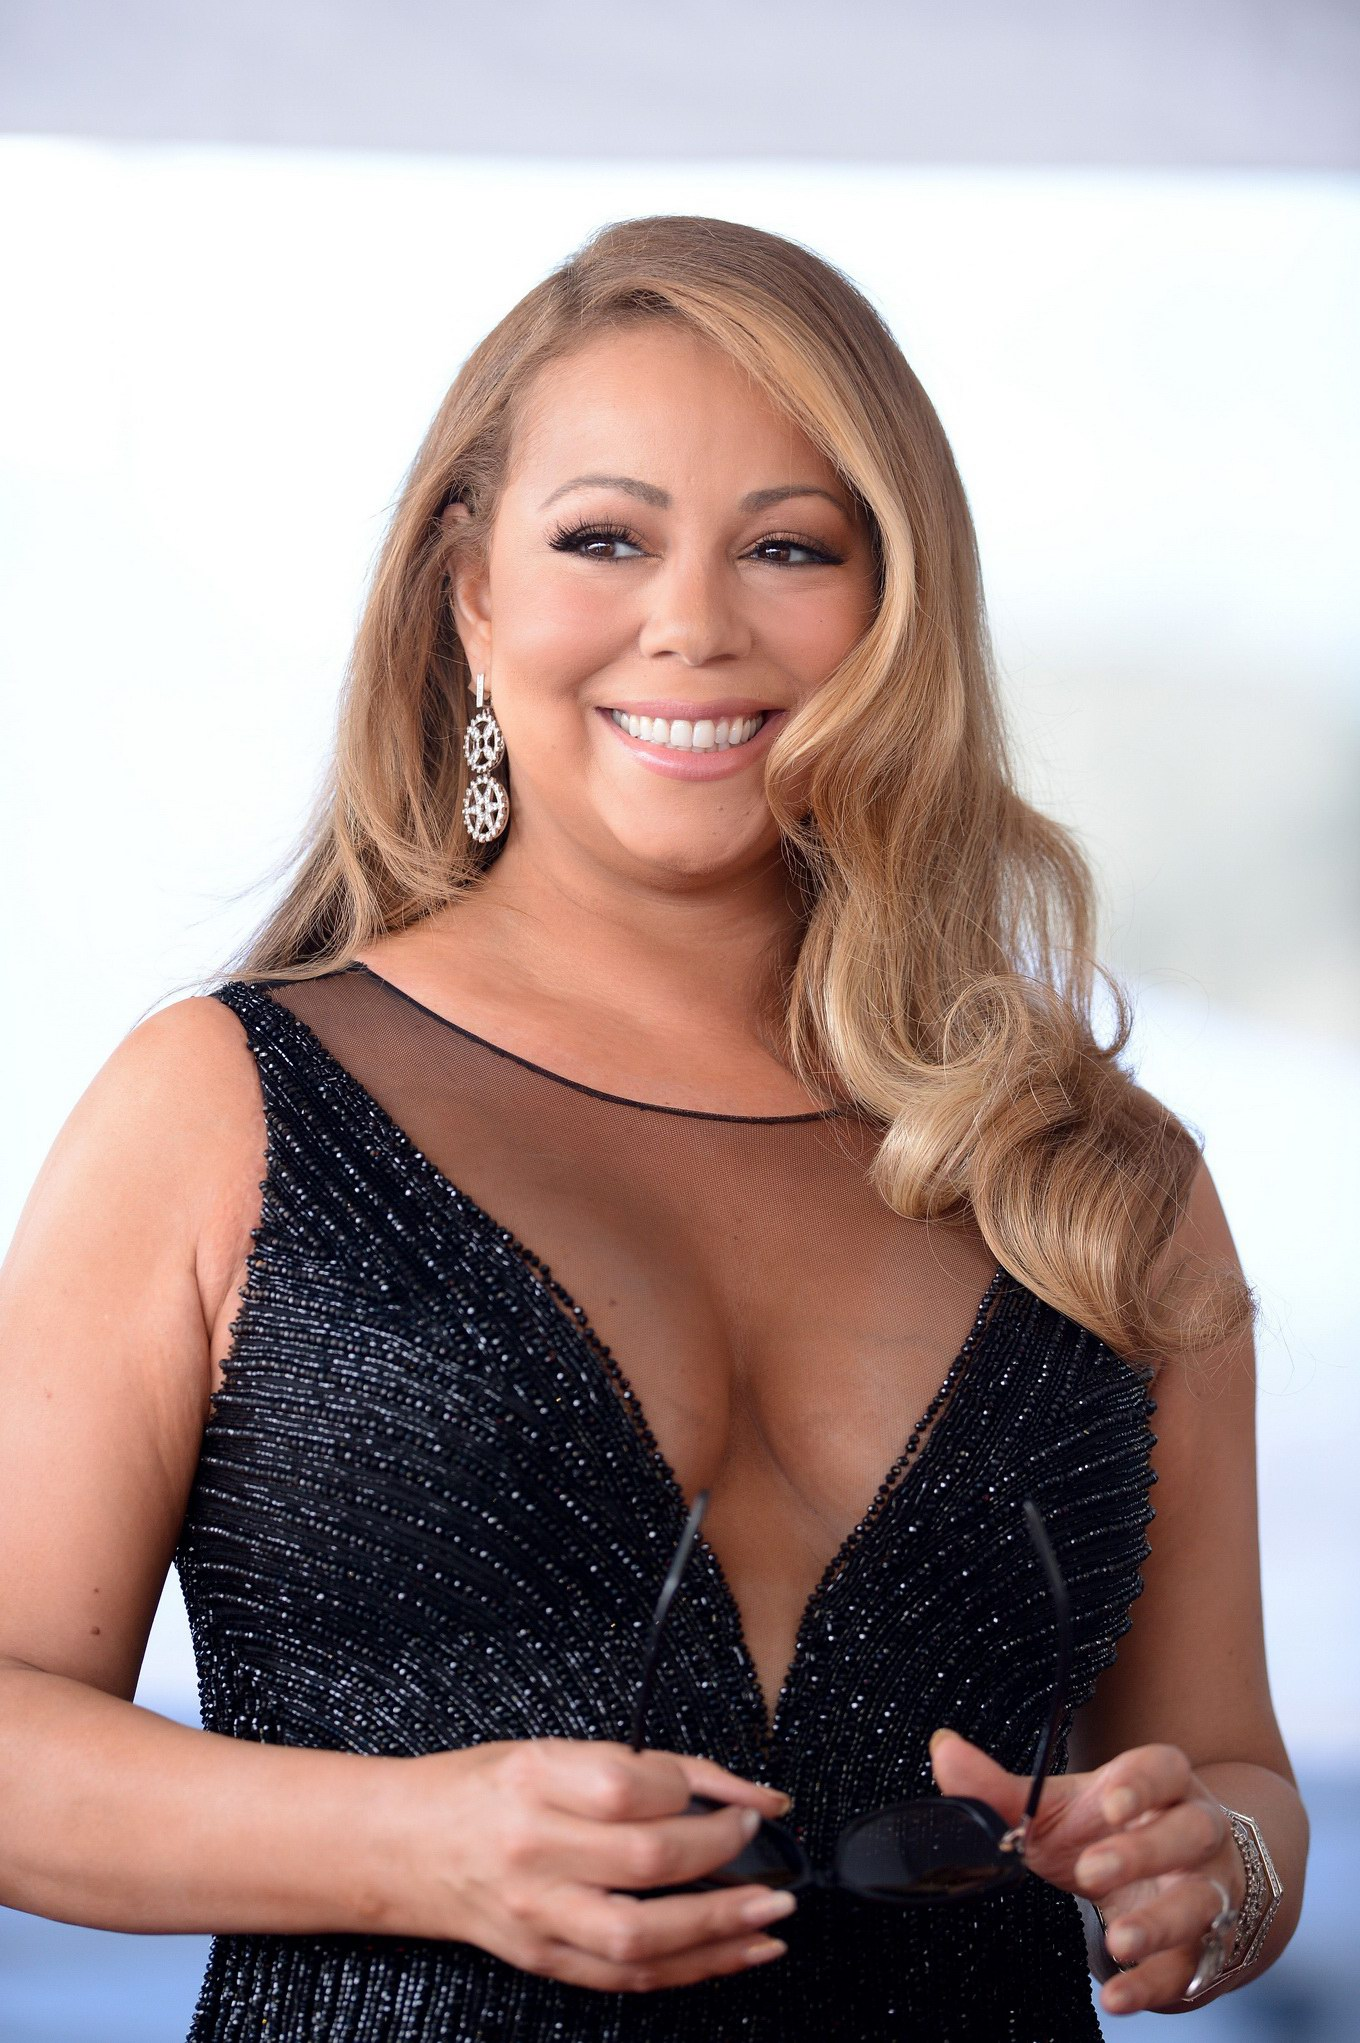 Mariah carey big cleavage sorry, that